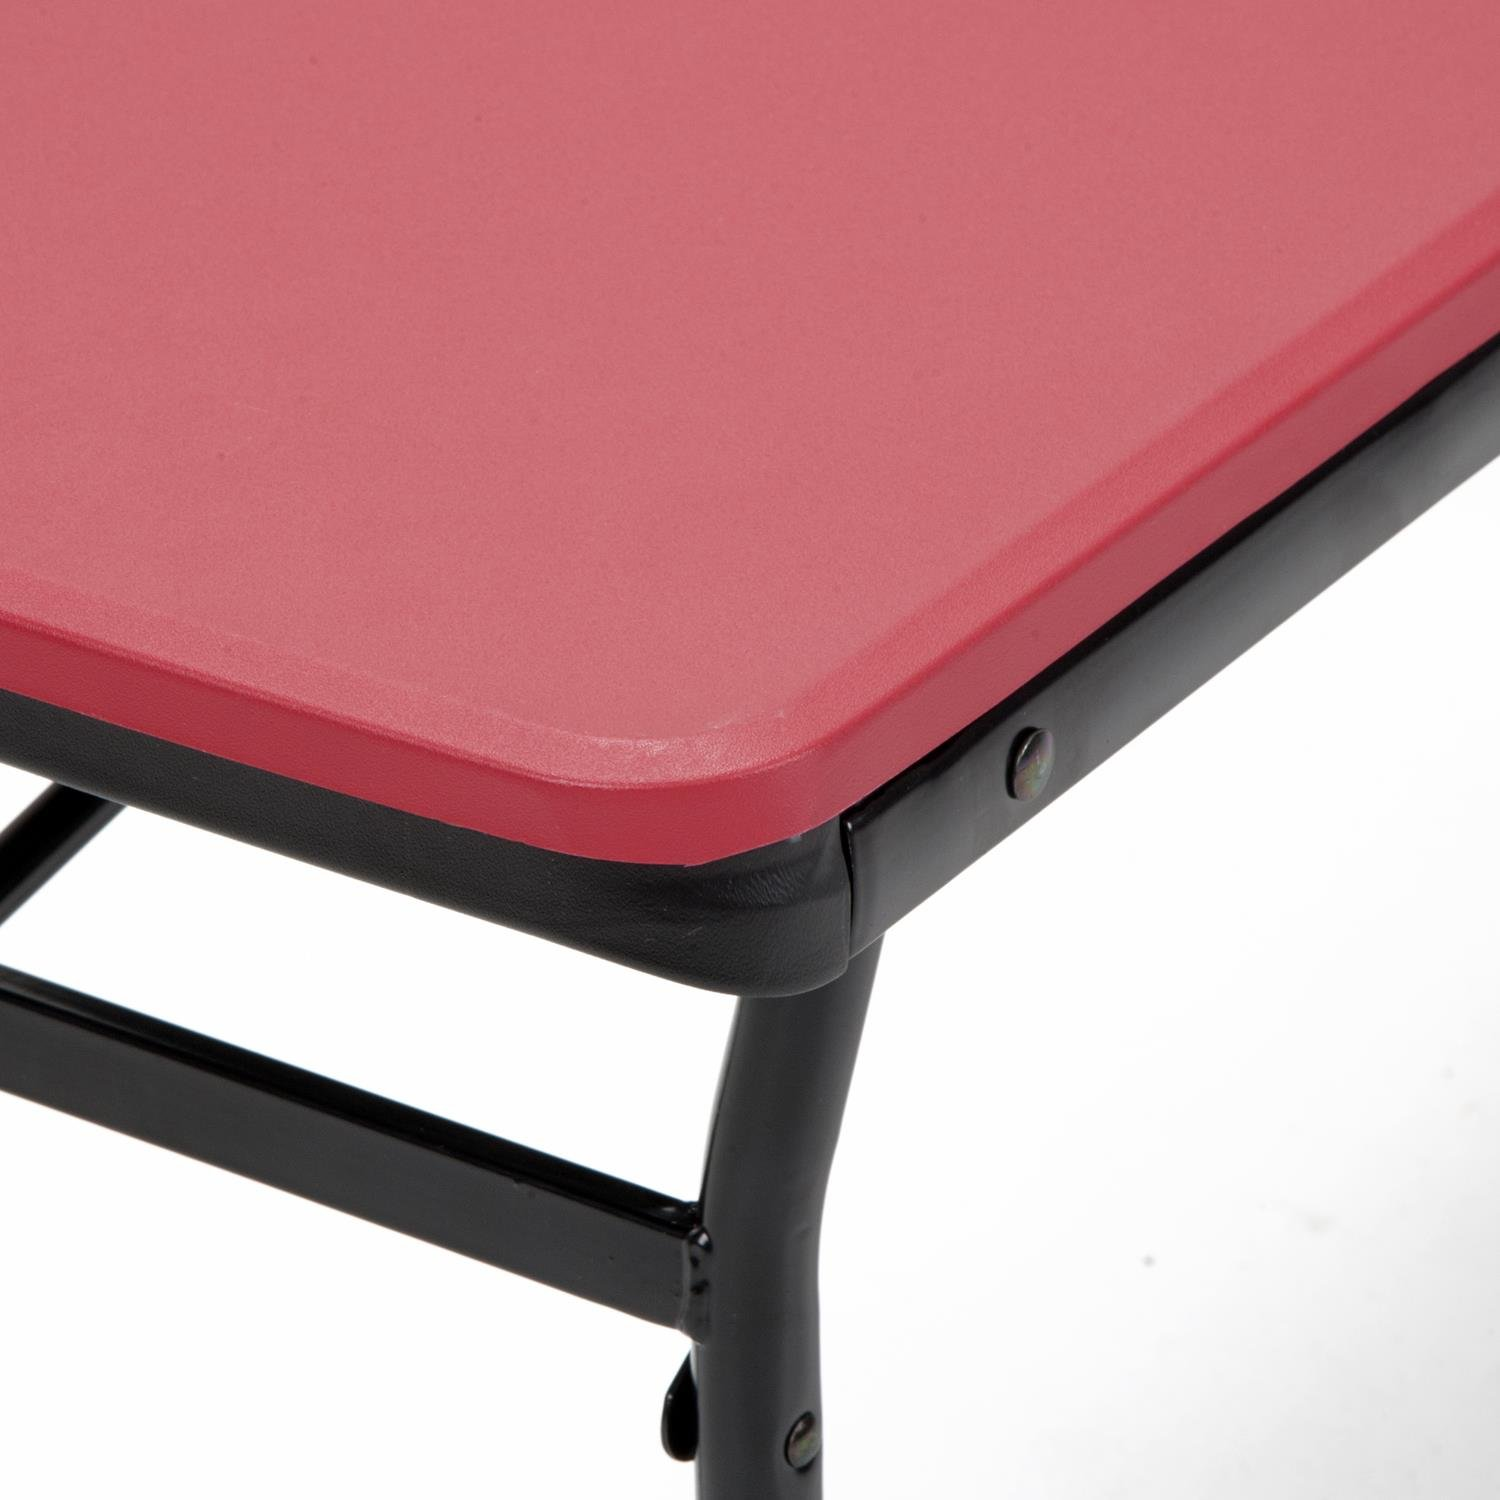 COSCO 6 ft. Indoor Outdoor Center Fold Tailgate Bench with Carrying Handle, Red Bench Top, Black Frame, 2-pack by Cosco Outdoor Living (Image #8)